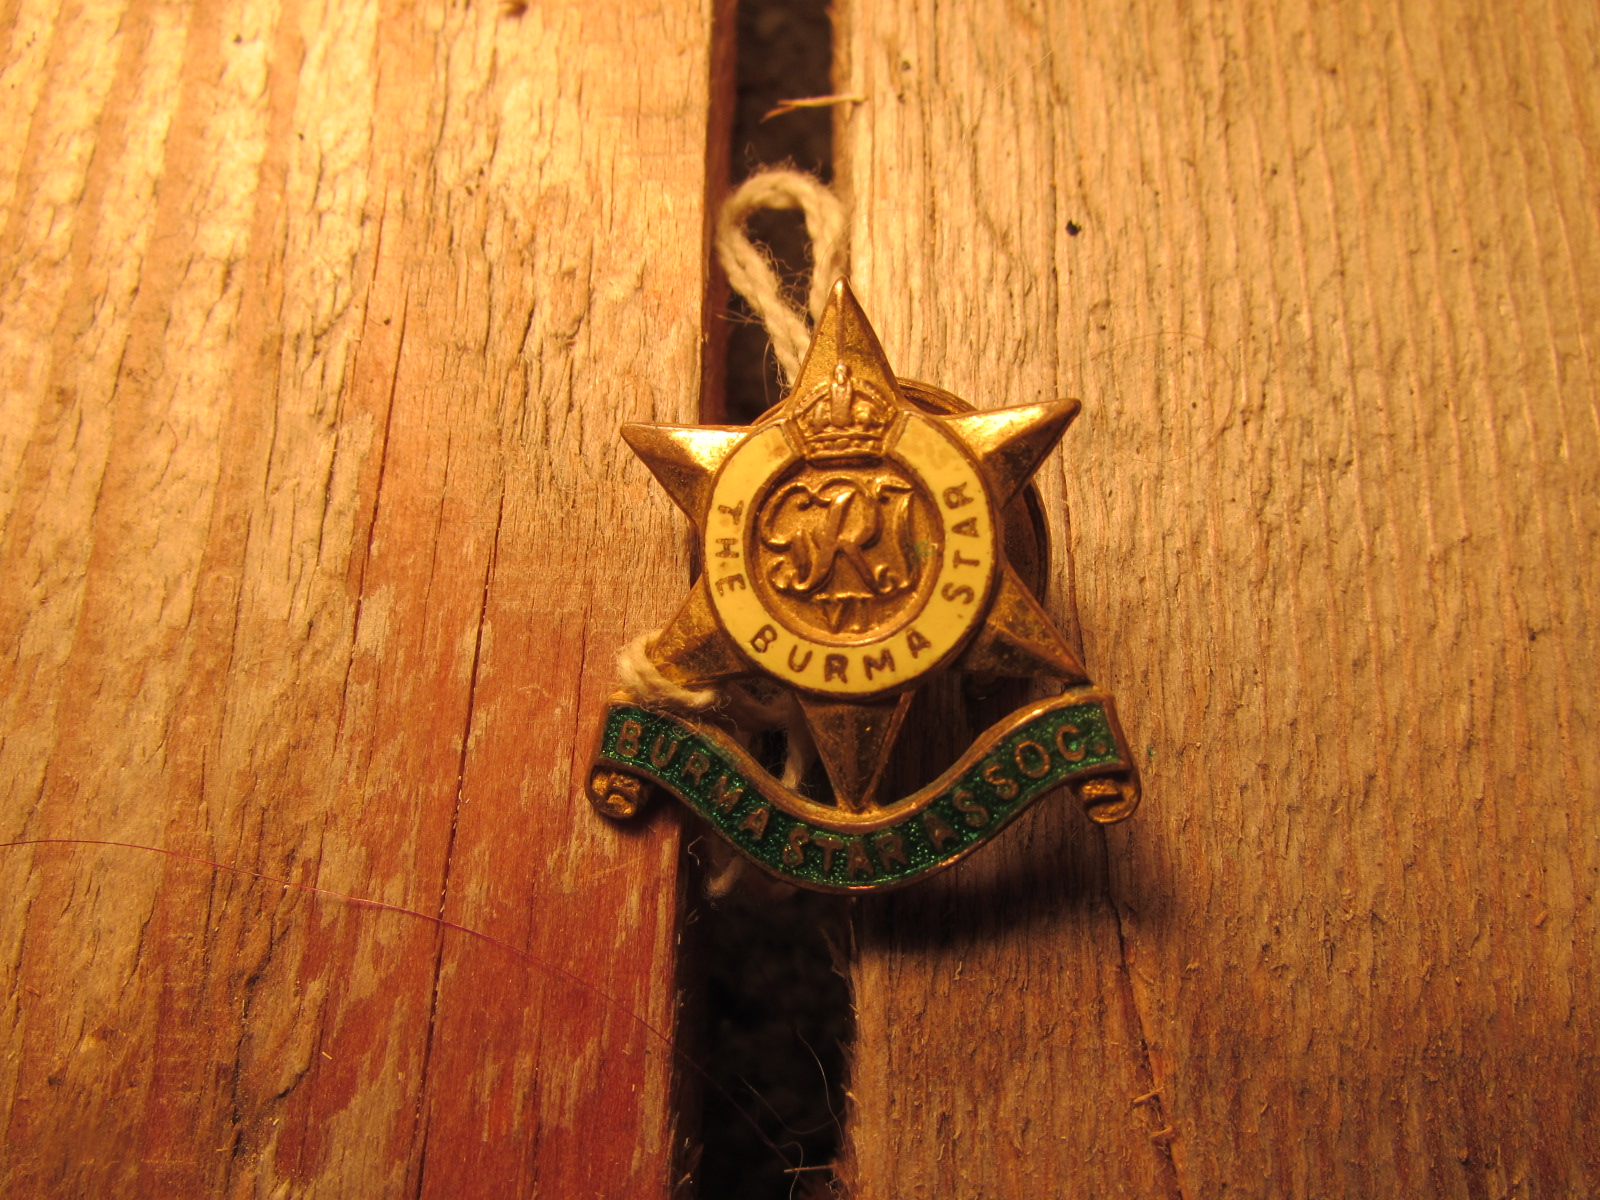 Burma star association badge